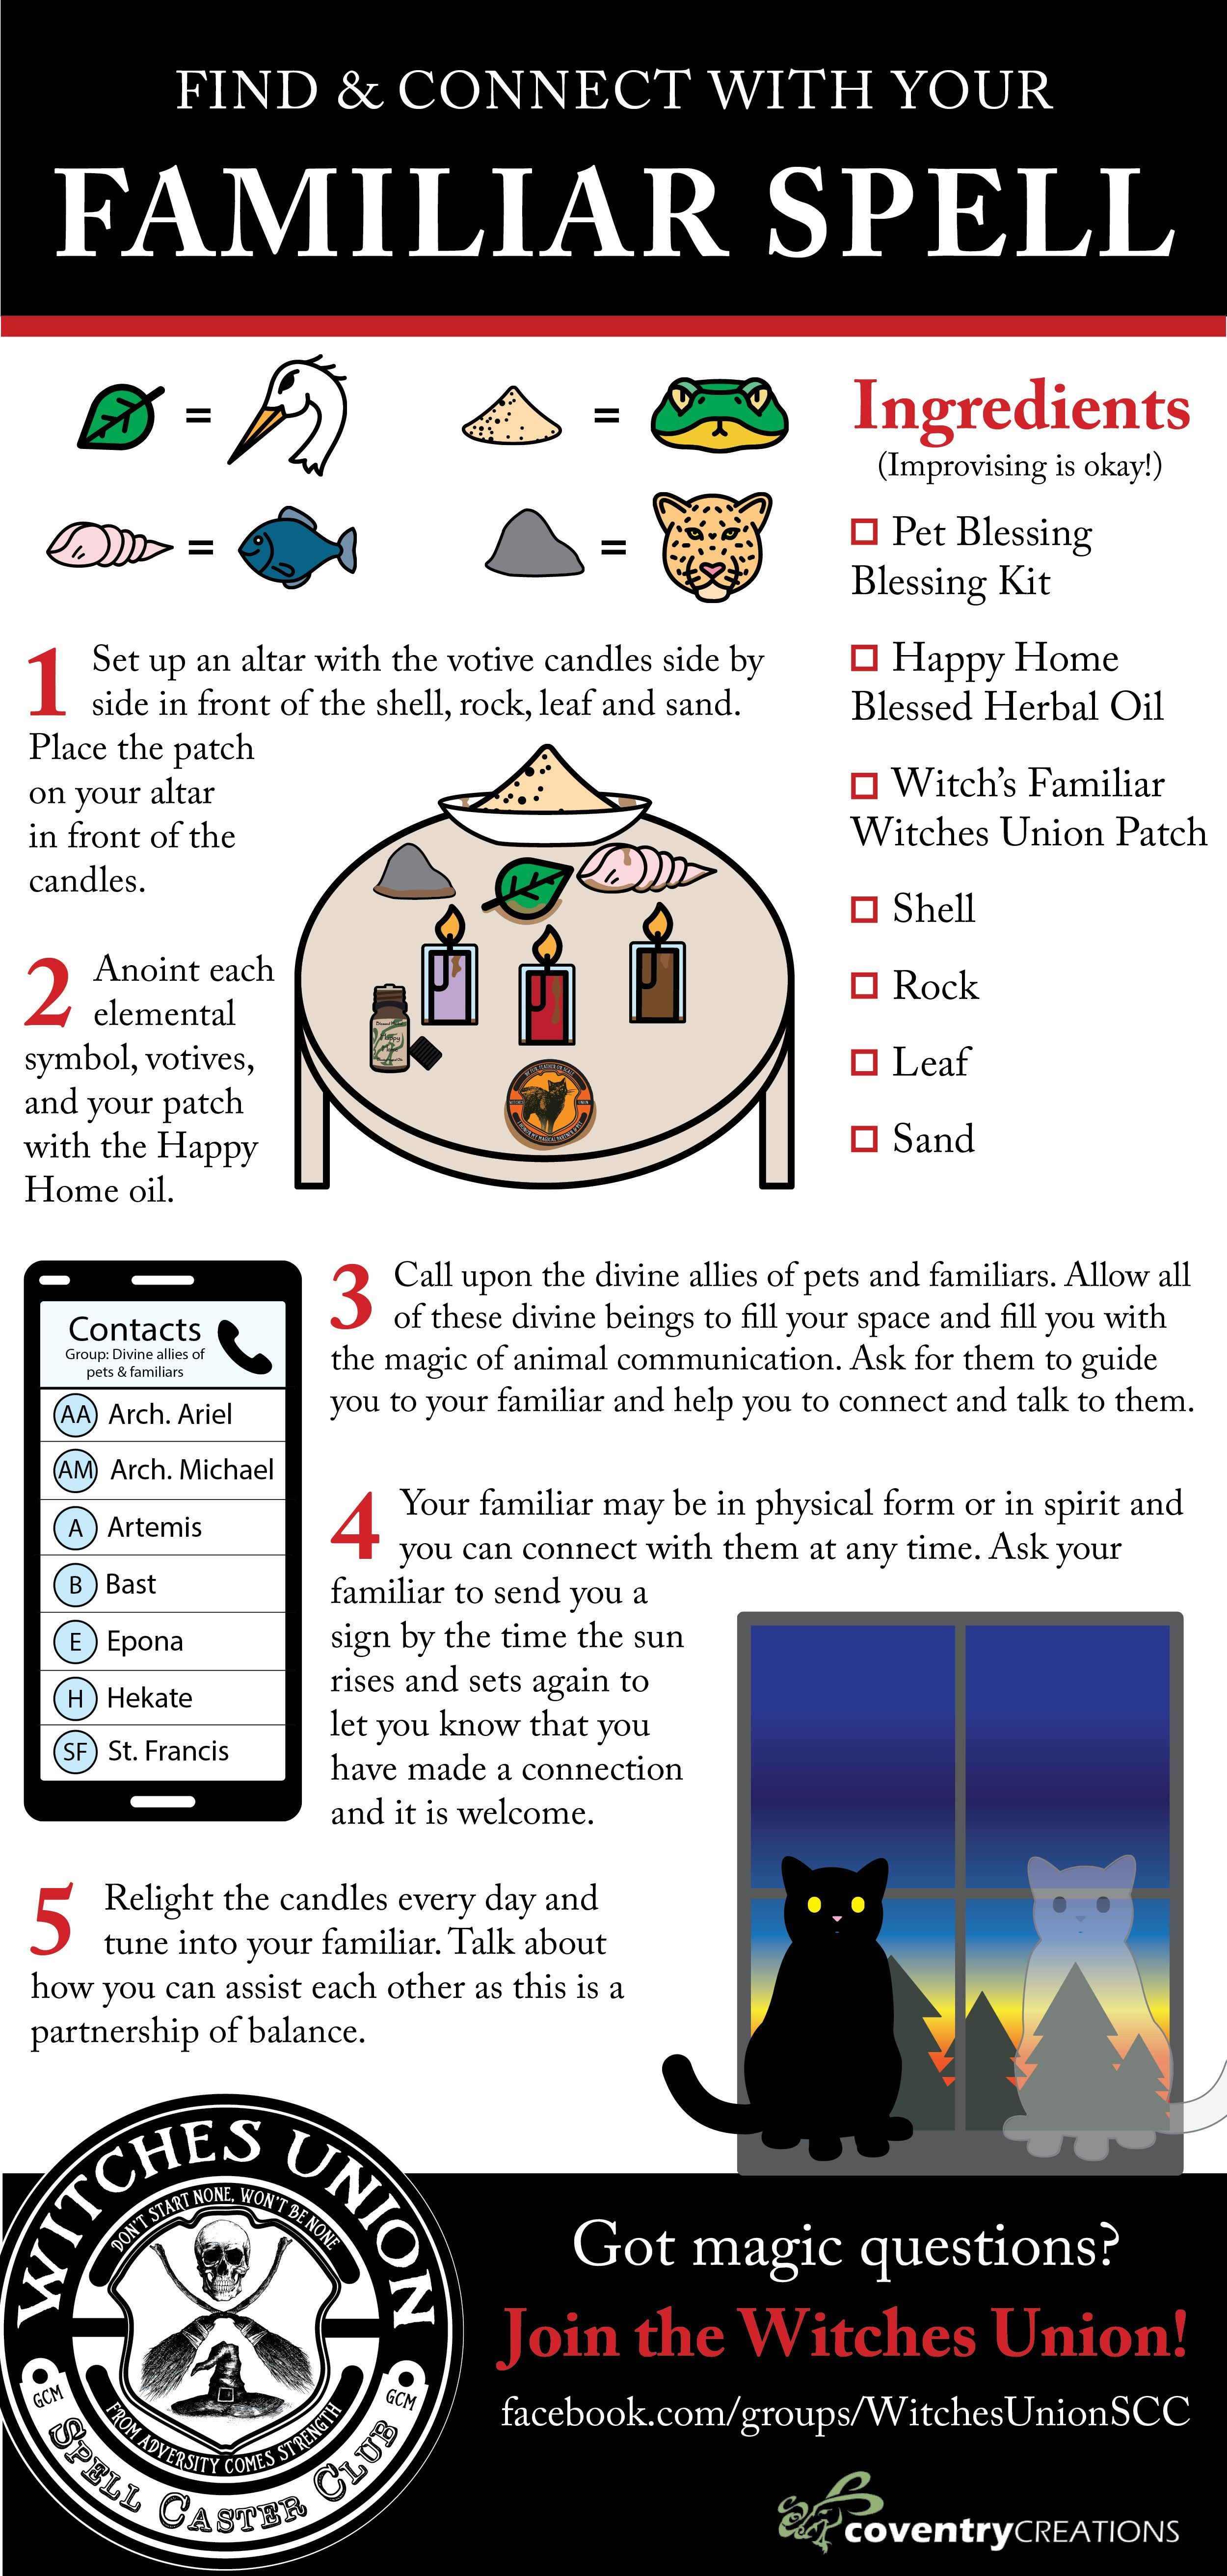 Familiar Spell #candlemagick Find/Connect with your Familiar #spell for a heart warming magical companion! #witchcraft // #forbeginners // #candle // #magick // spiritguide // #cat // #ritual // #witch // #magic #candlecolormeanings